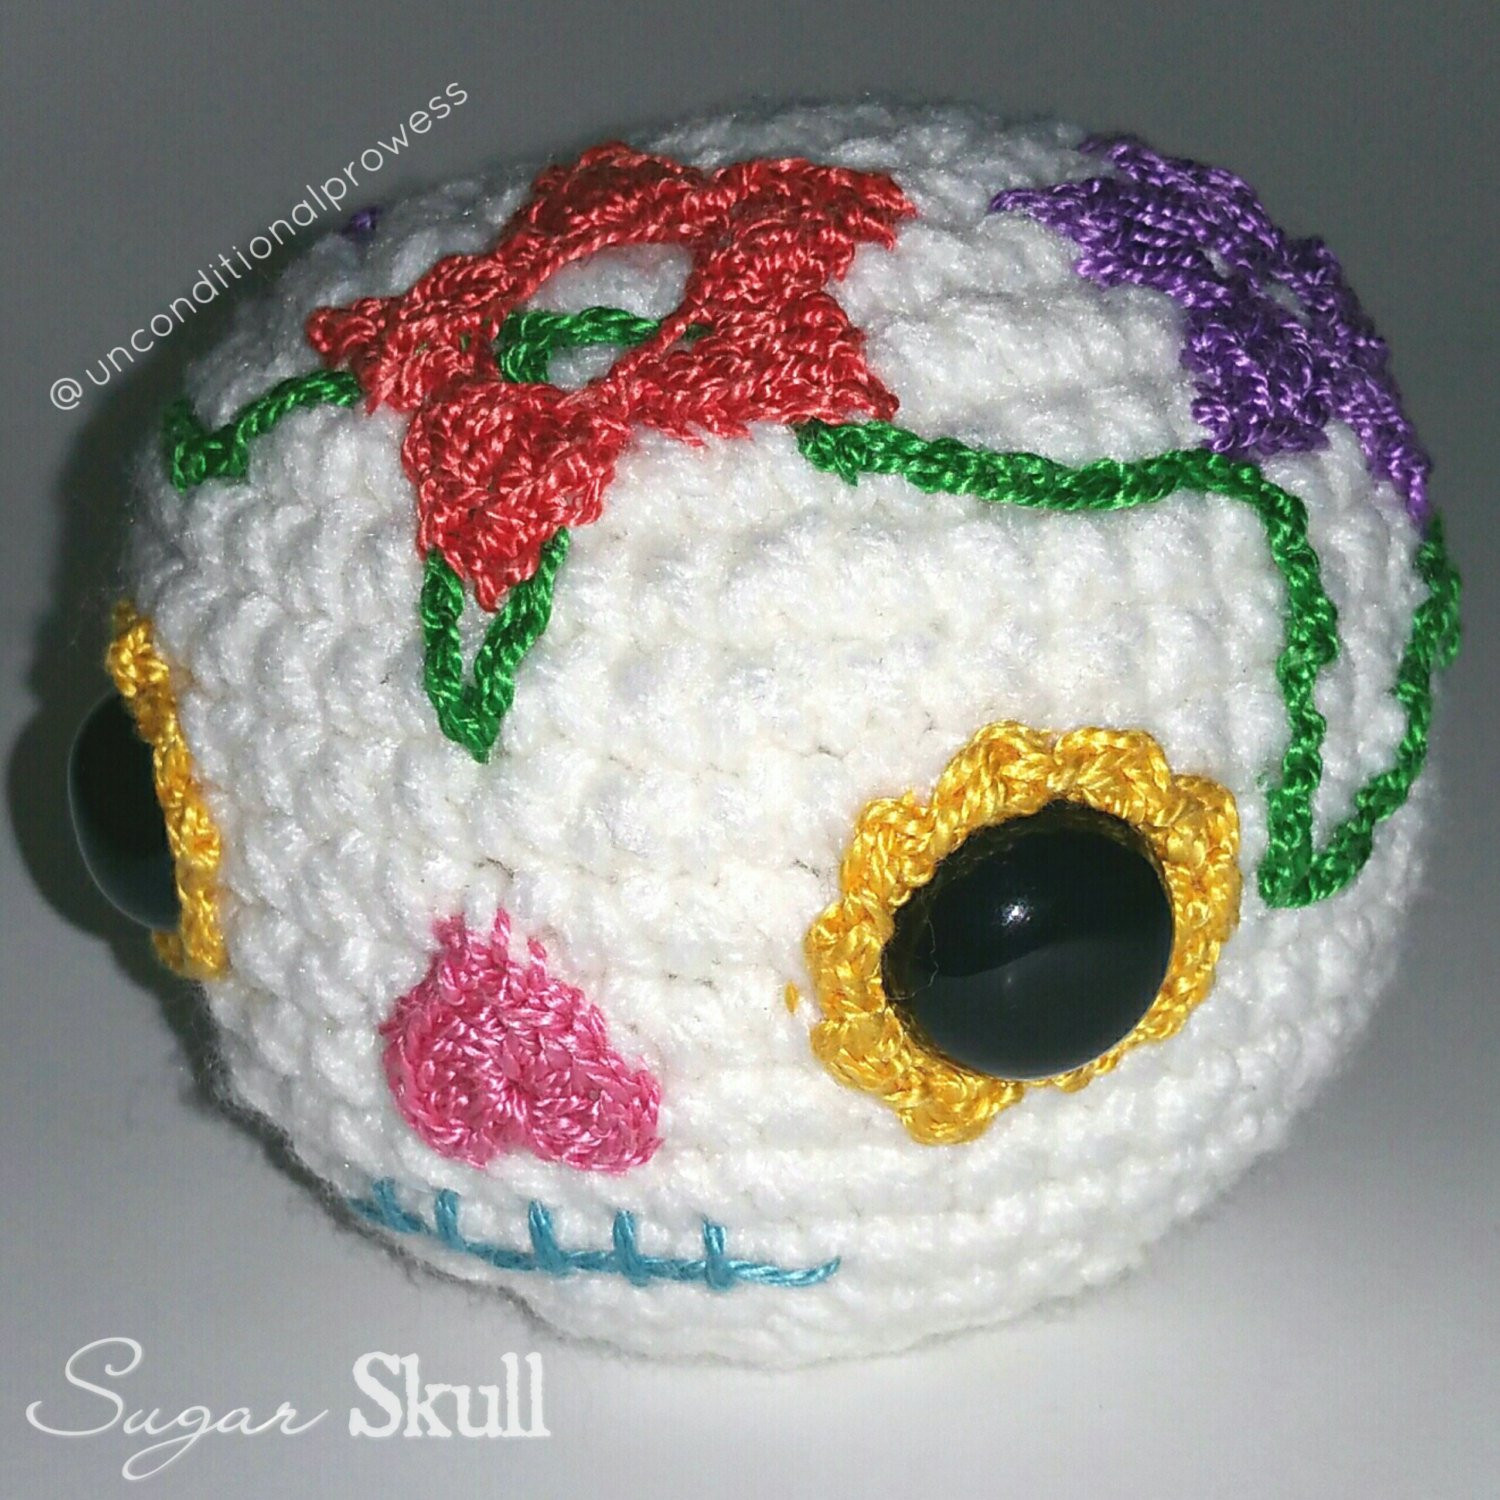 Best Of Crochet Sugar Skull Candy Skull Handmade Amigurumi Crochet Sugar Skull Of Incredible 47 Pictures Crochet Sugar Skull